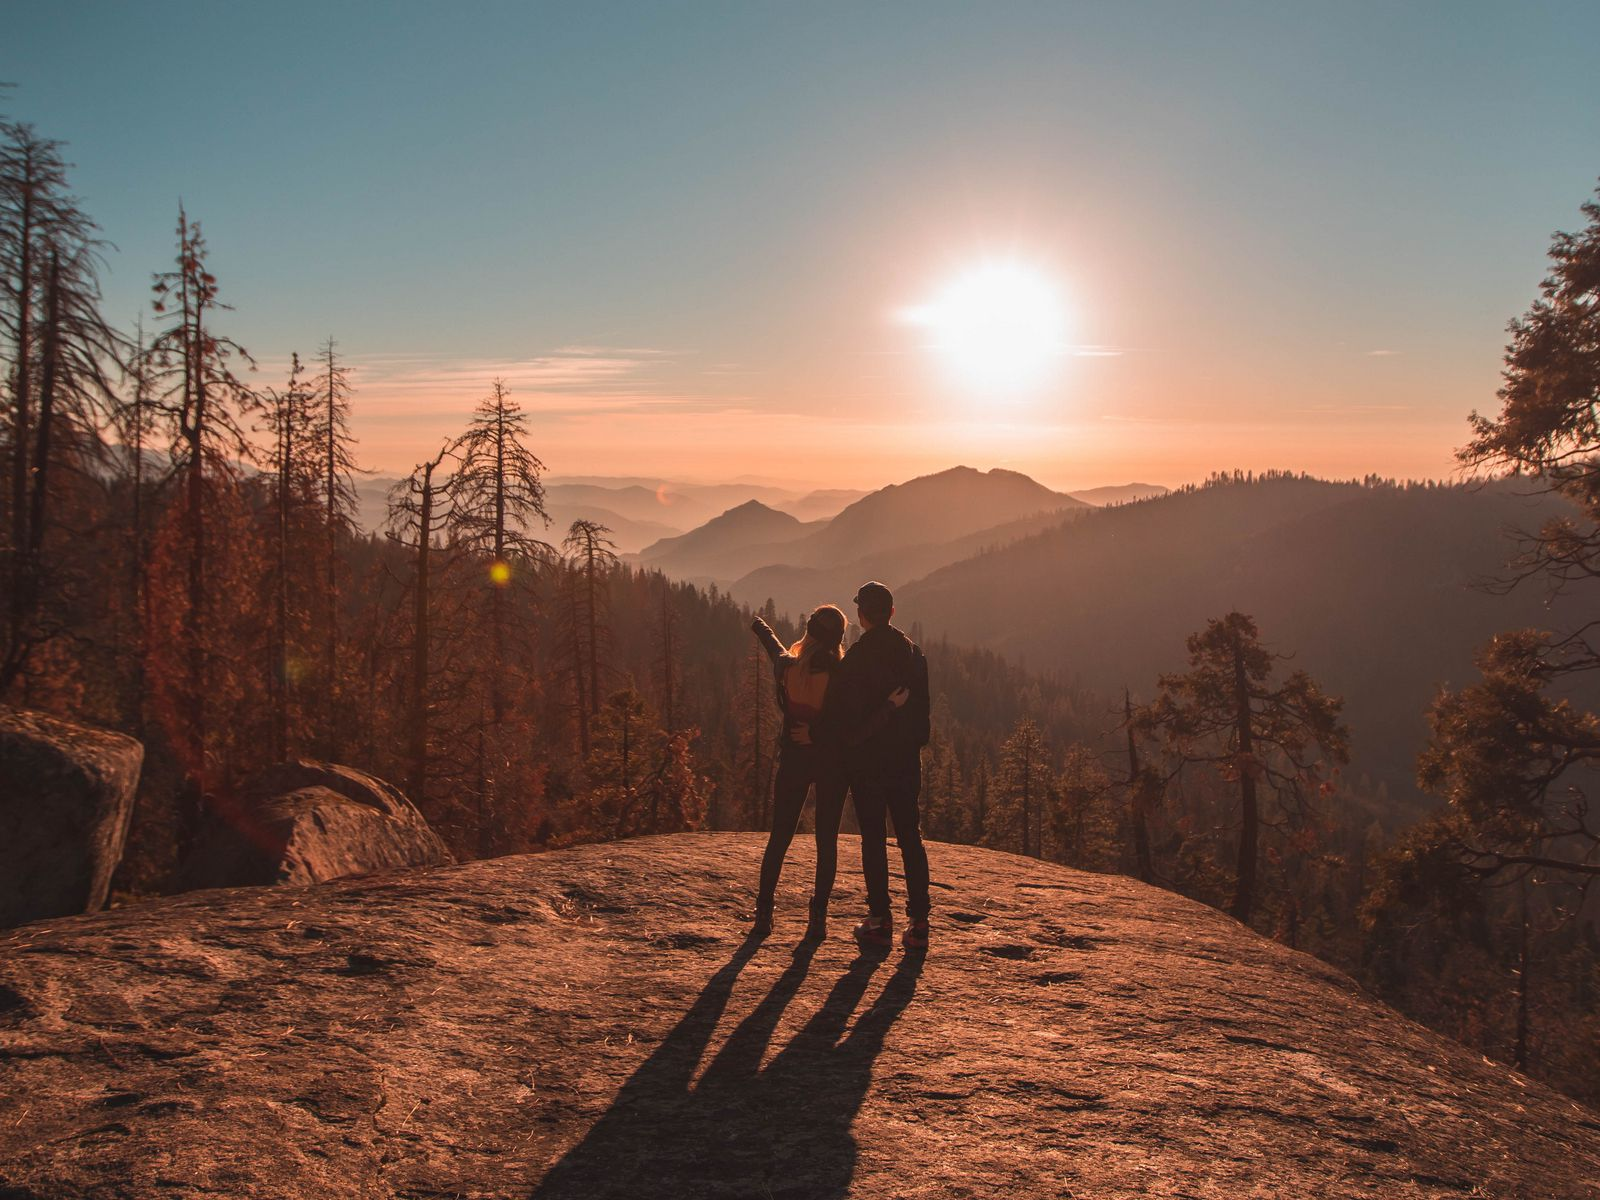 1600x1200 Wallpaper couple, mountains, travel, sunset, sequoia national park, united states